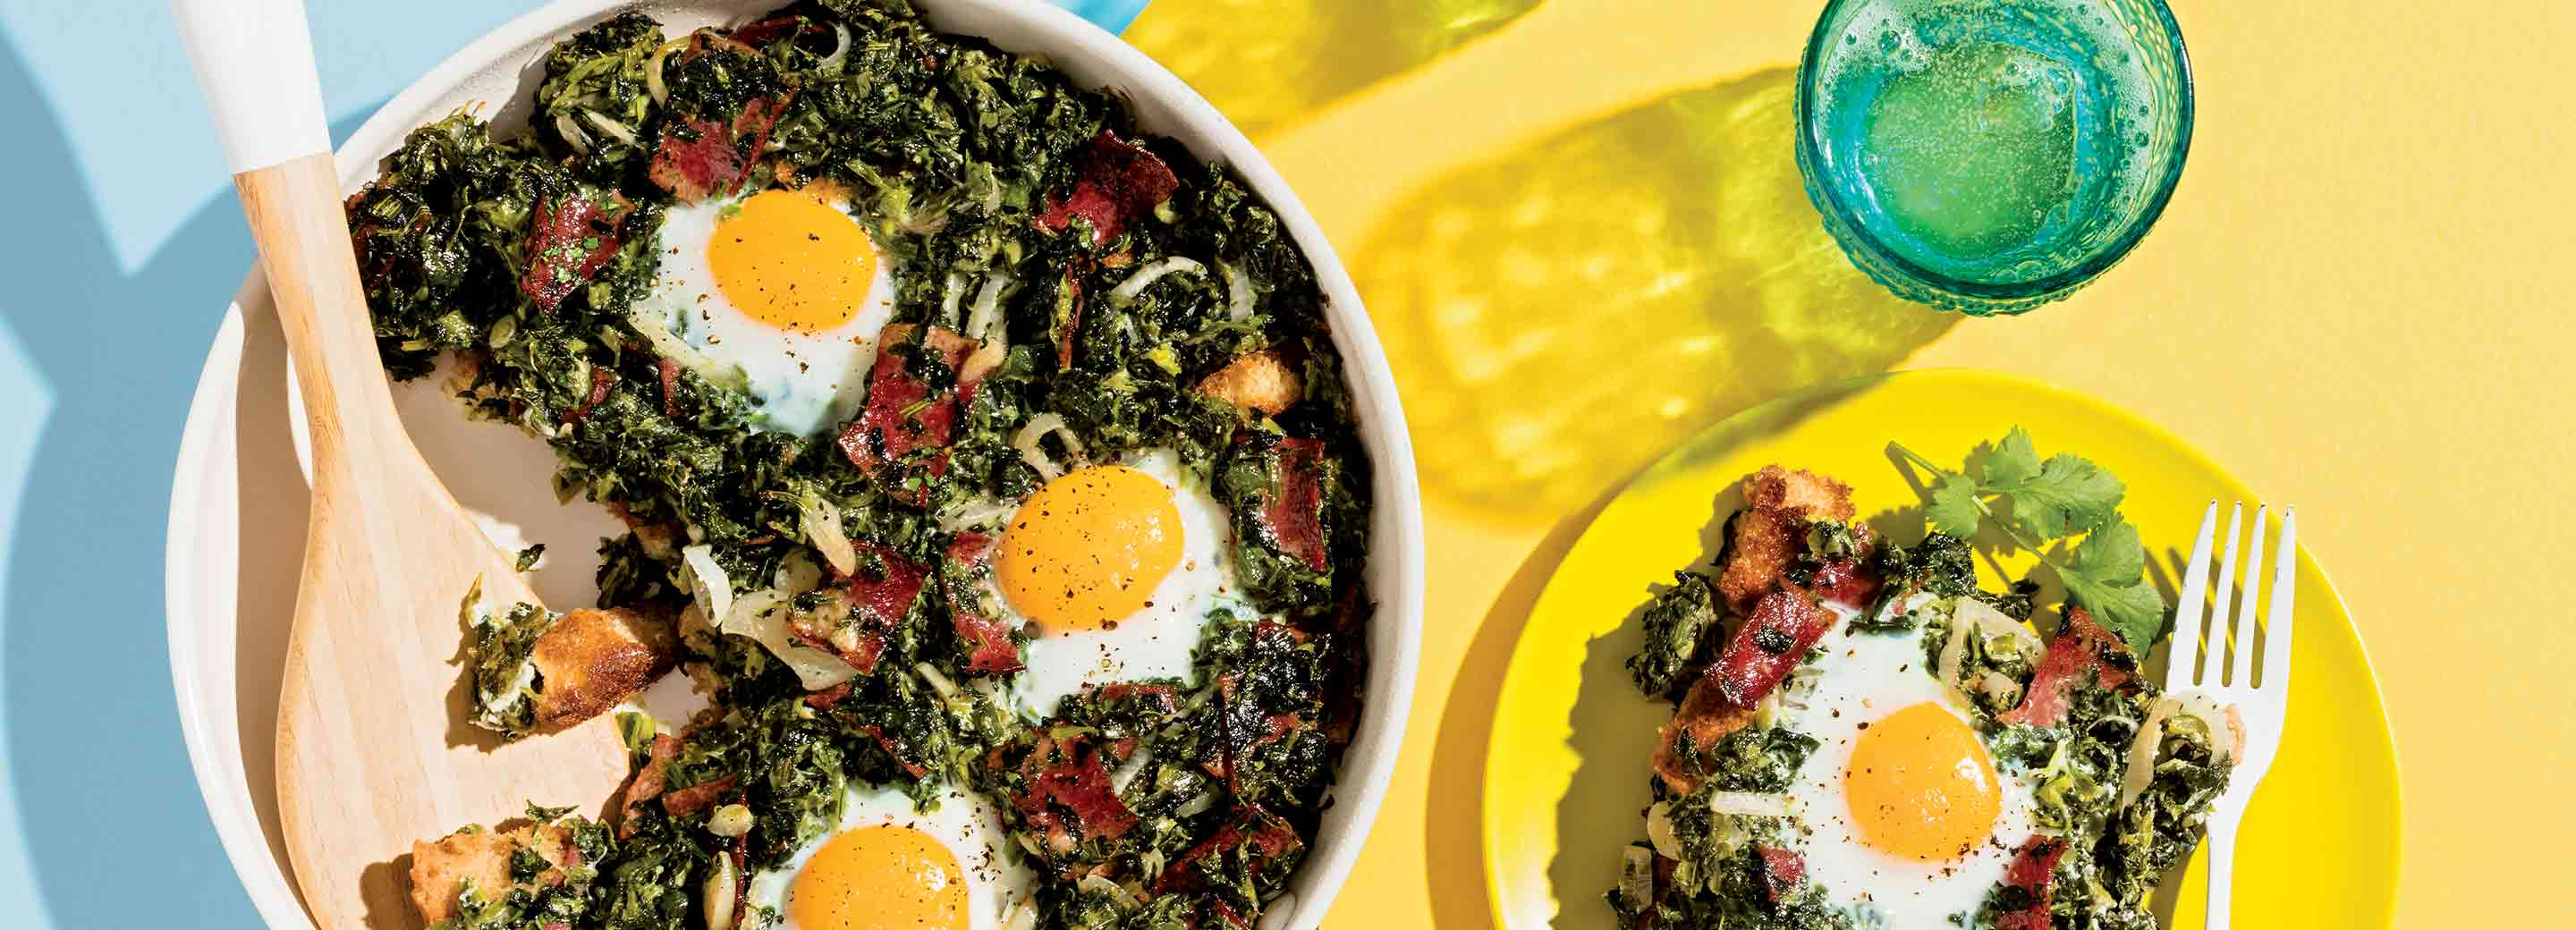 One-Pan Baked Eggs & Greens